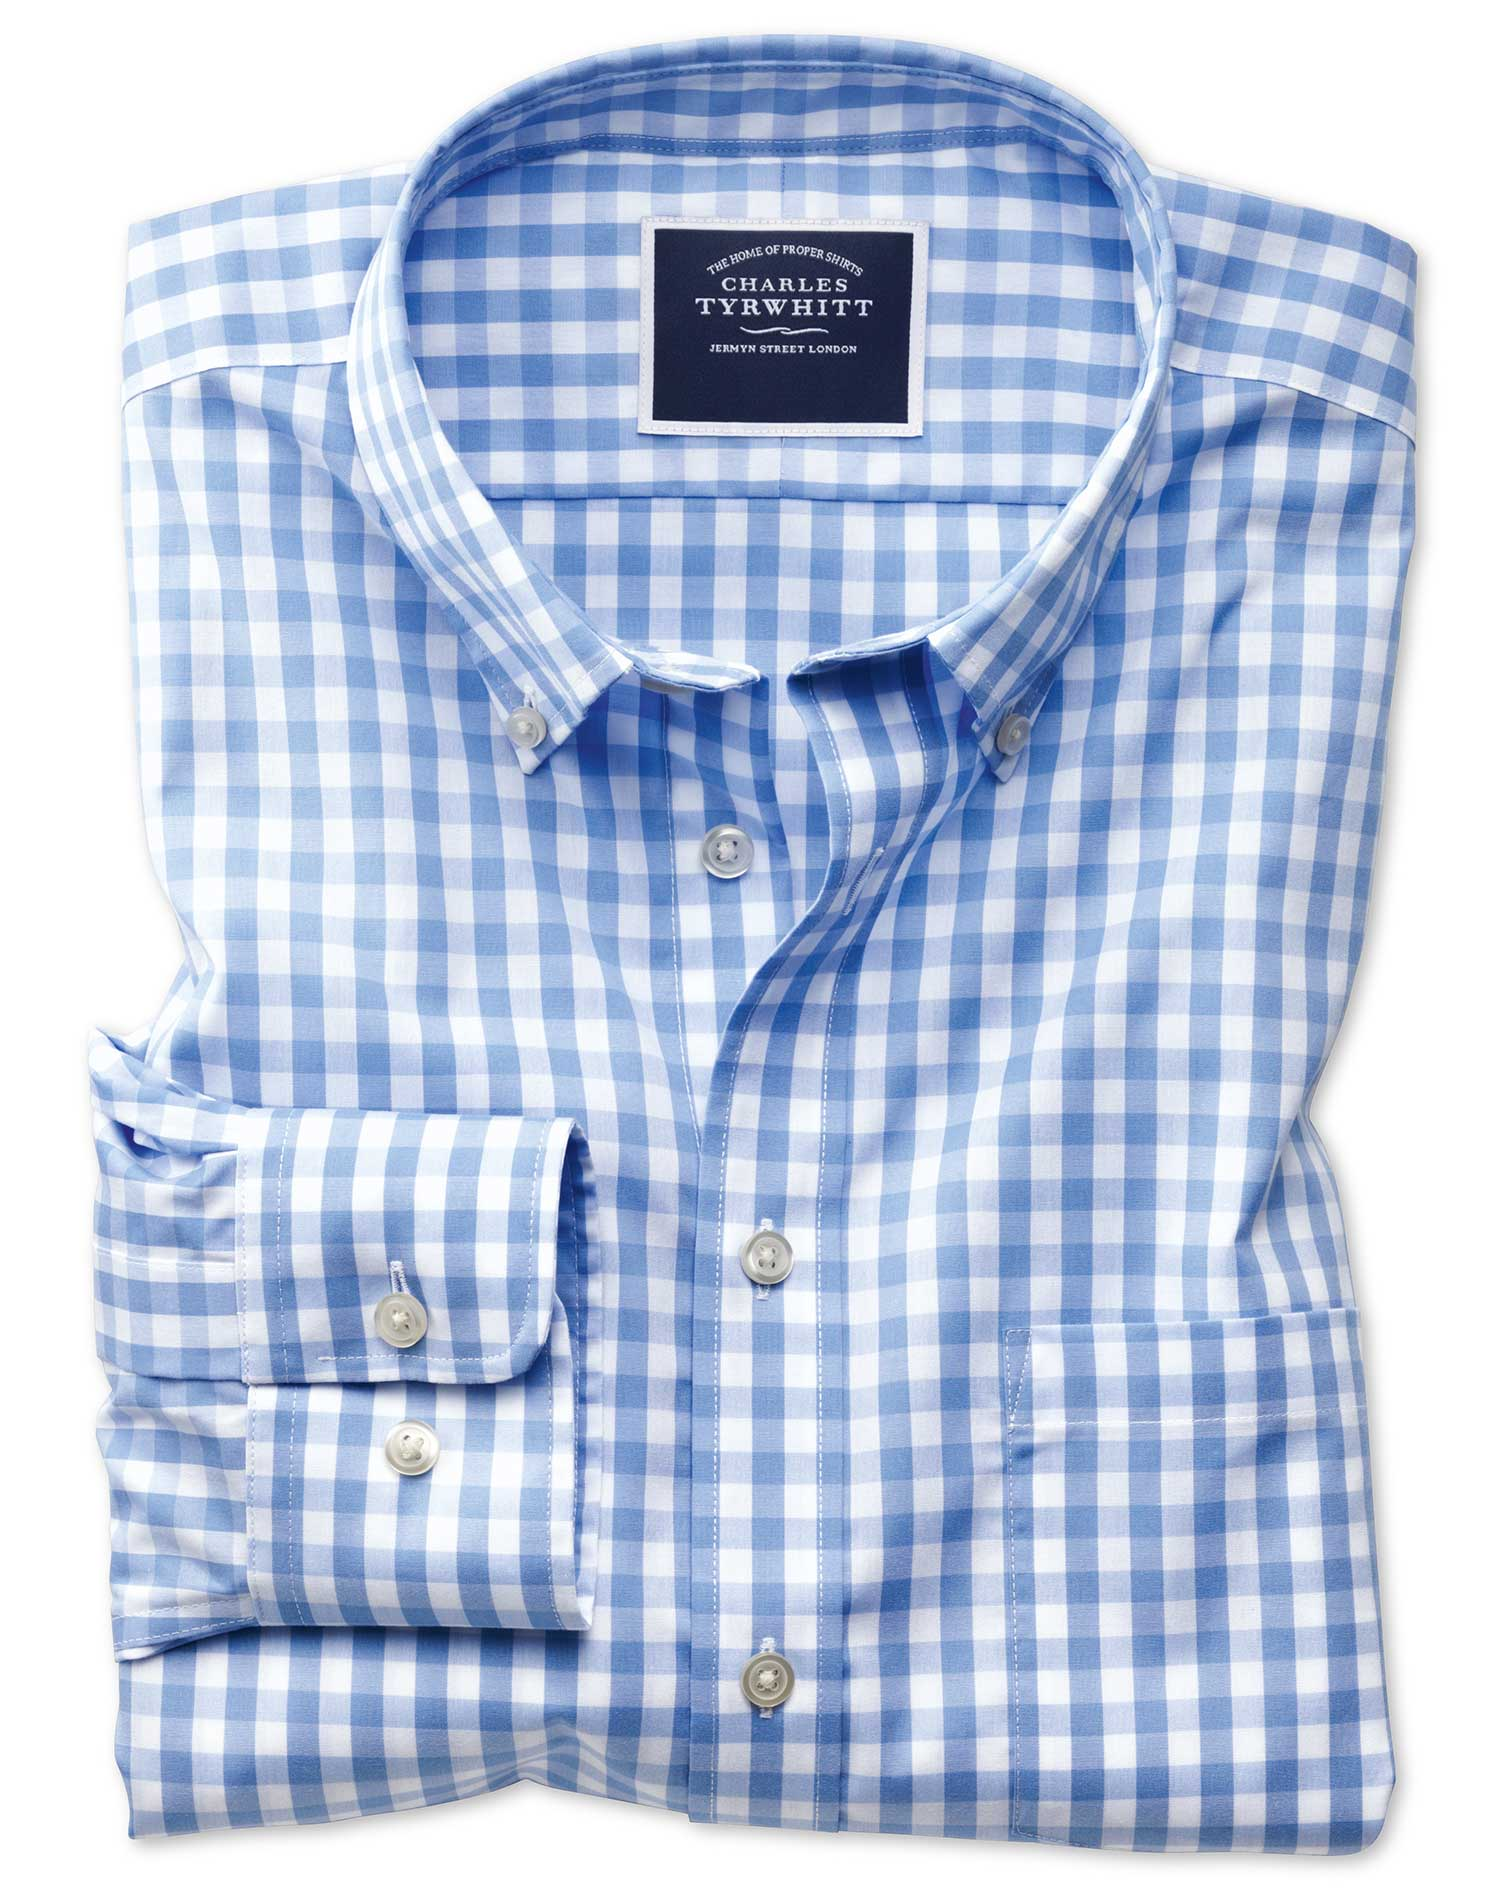 Slim Fit Button-Down Non-Iron Poplin Sky Blue Gingham Cotton Shirt Single Cuff Size XL by Charles Ty